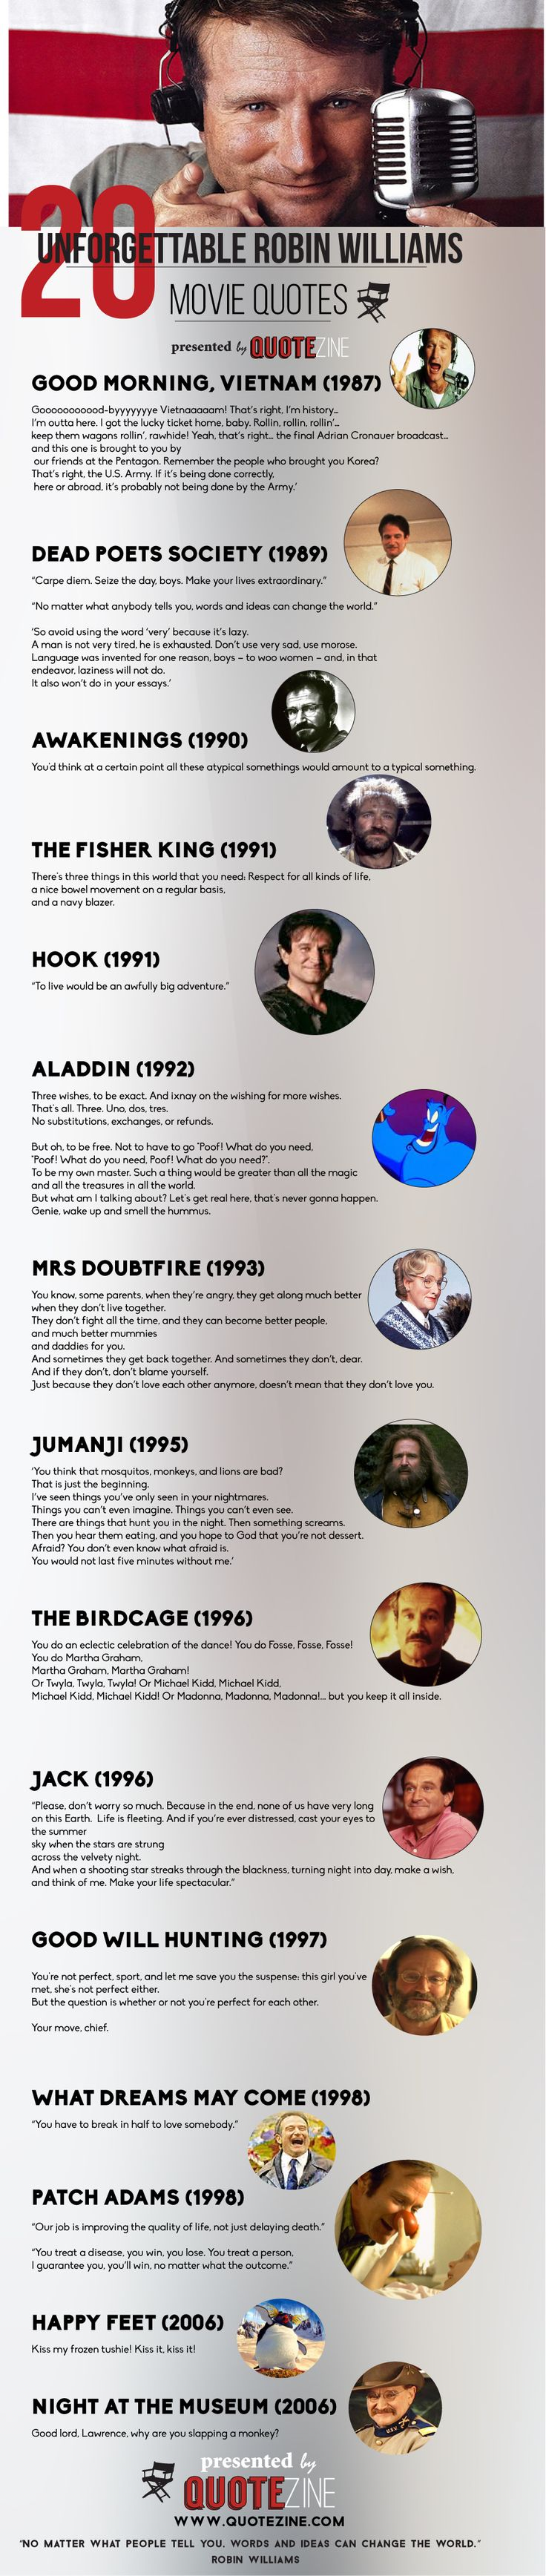 And now I'm crying 20 Unforgettable Robin Williams Movie Quotes #infographic #quotes #motivational